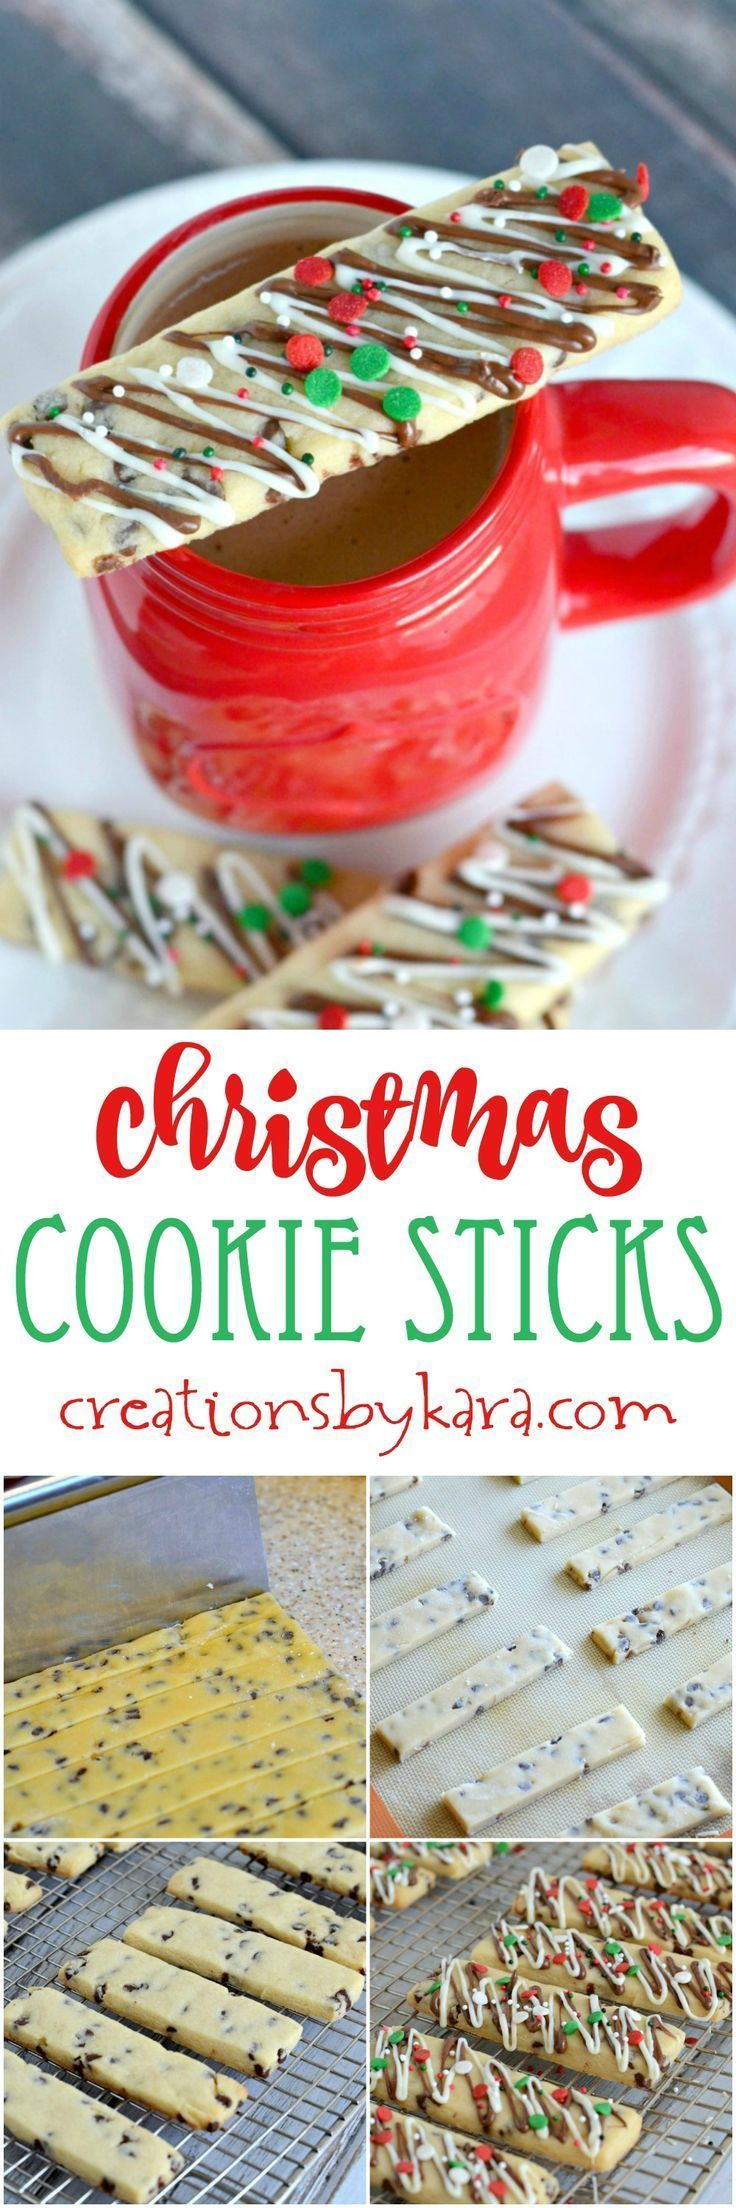 Homemade Chocolate Drizzled Christmas Cookie Sticks!  These are perfect for dunking in your hot cocoa or coffee. An easy Christmas cookie recipe that everyone loves and is perfect as a Christmas dessert.